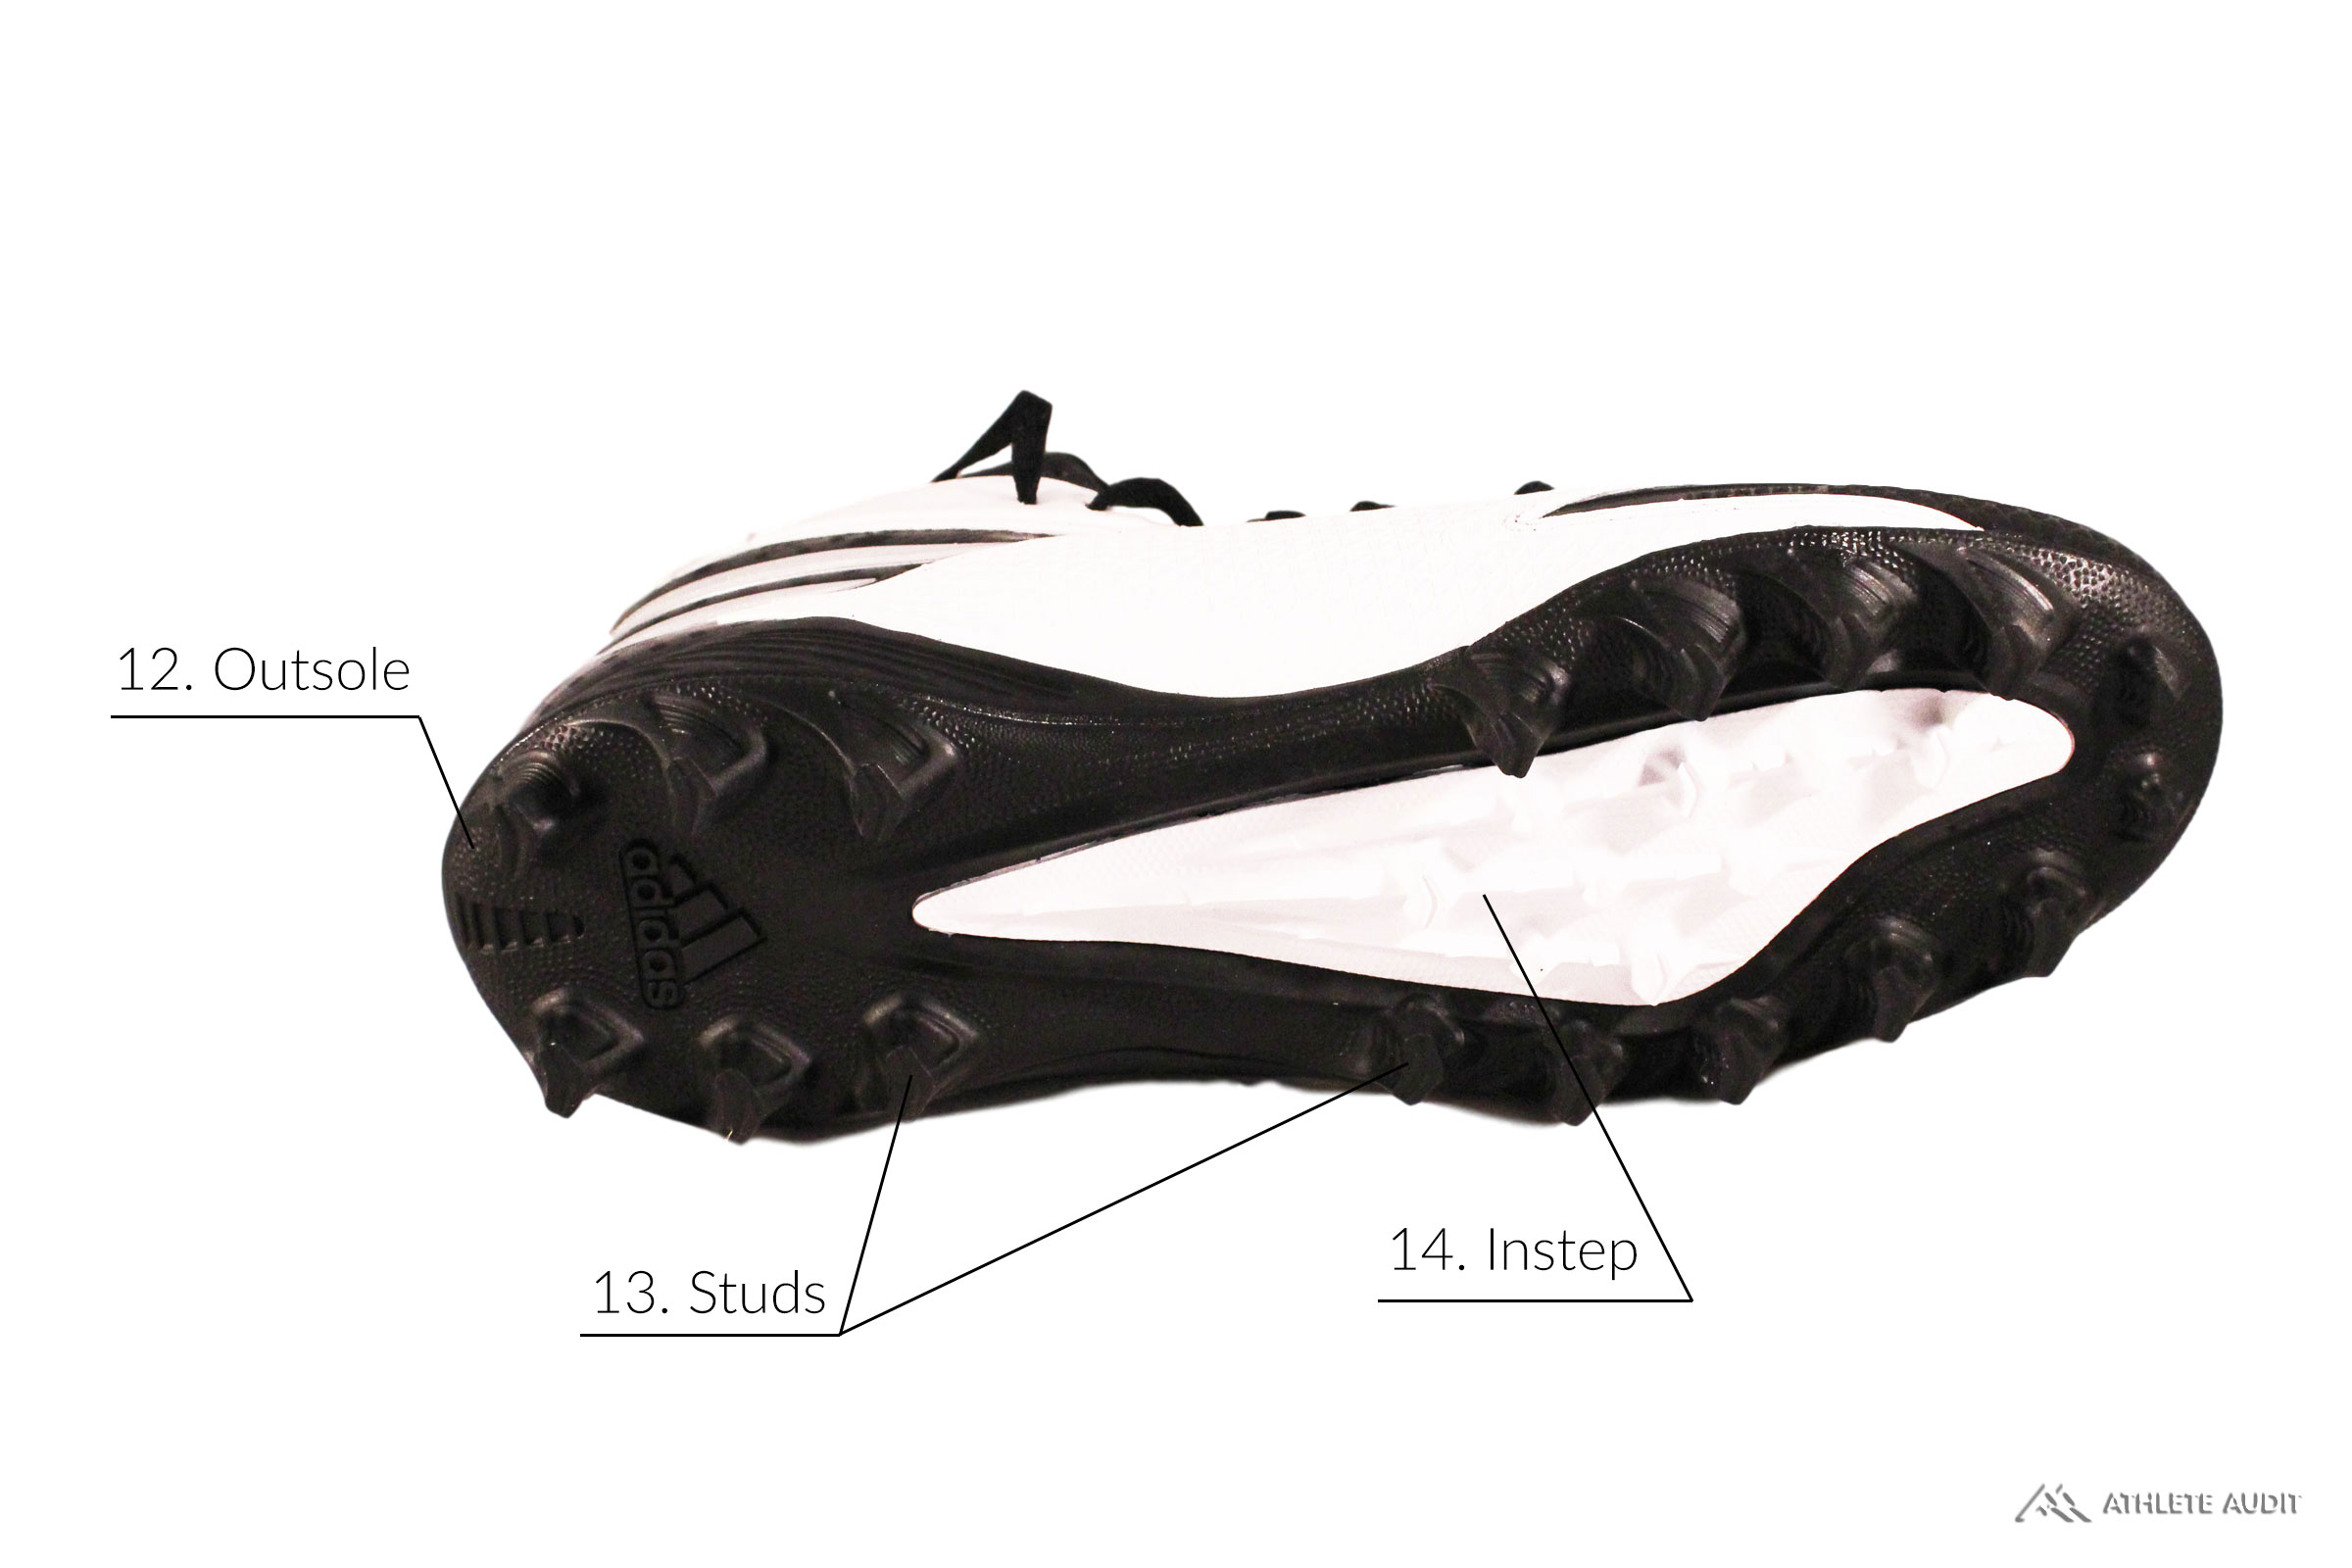 Parts of a Football Cleat - Outsole - Anatomy of an Athletic Shoe - Athlete Audit